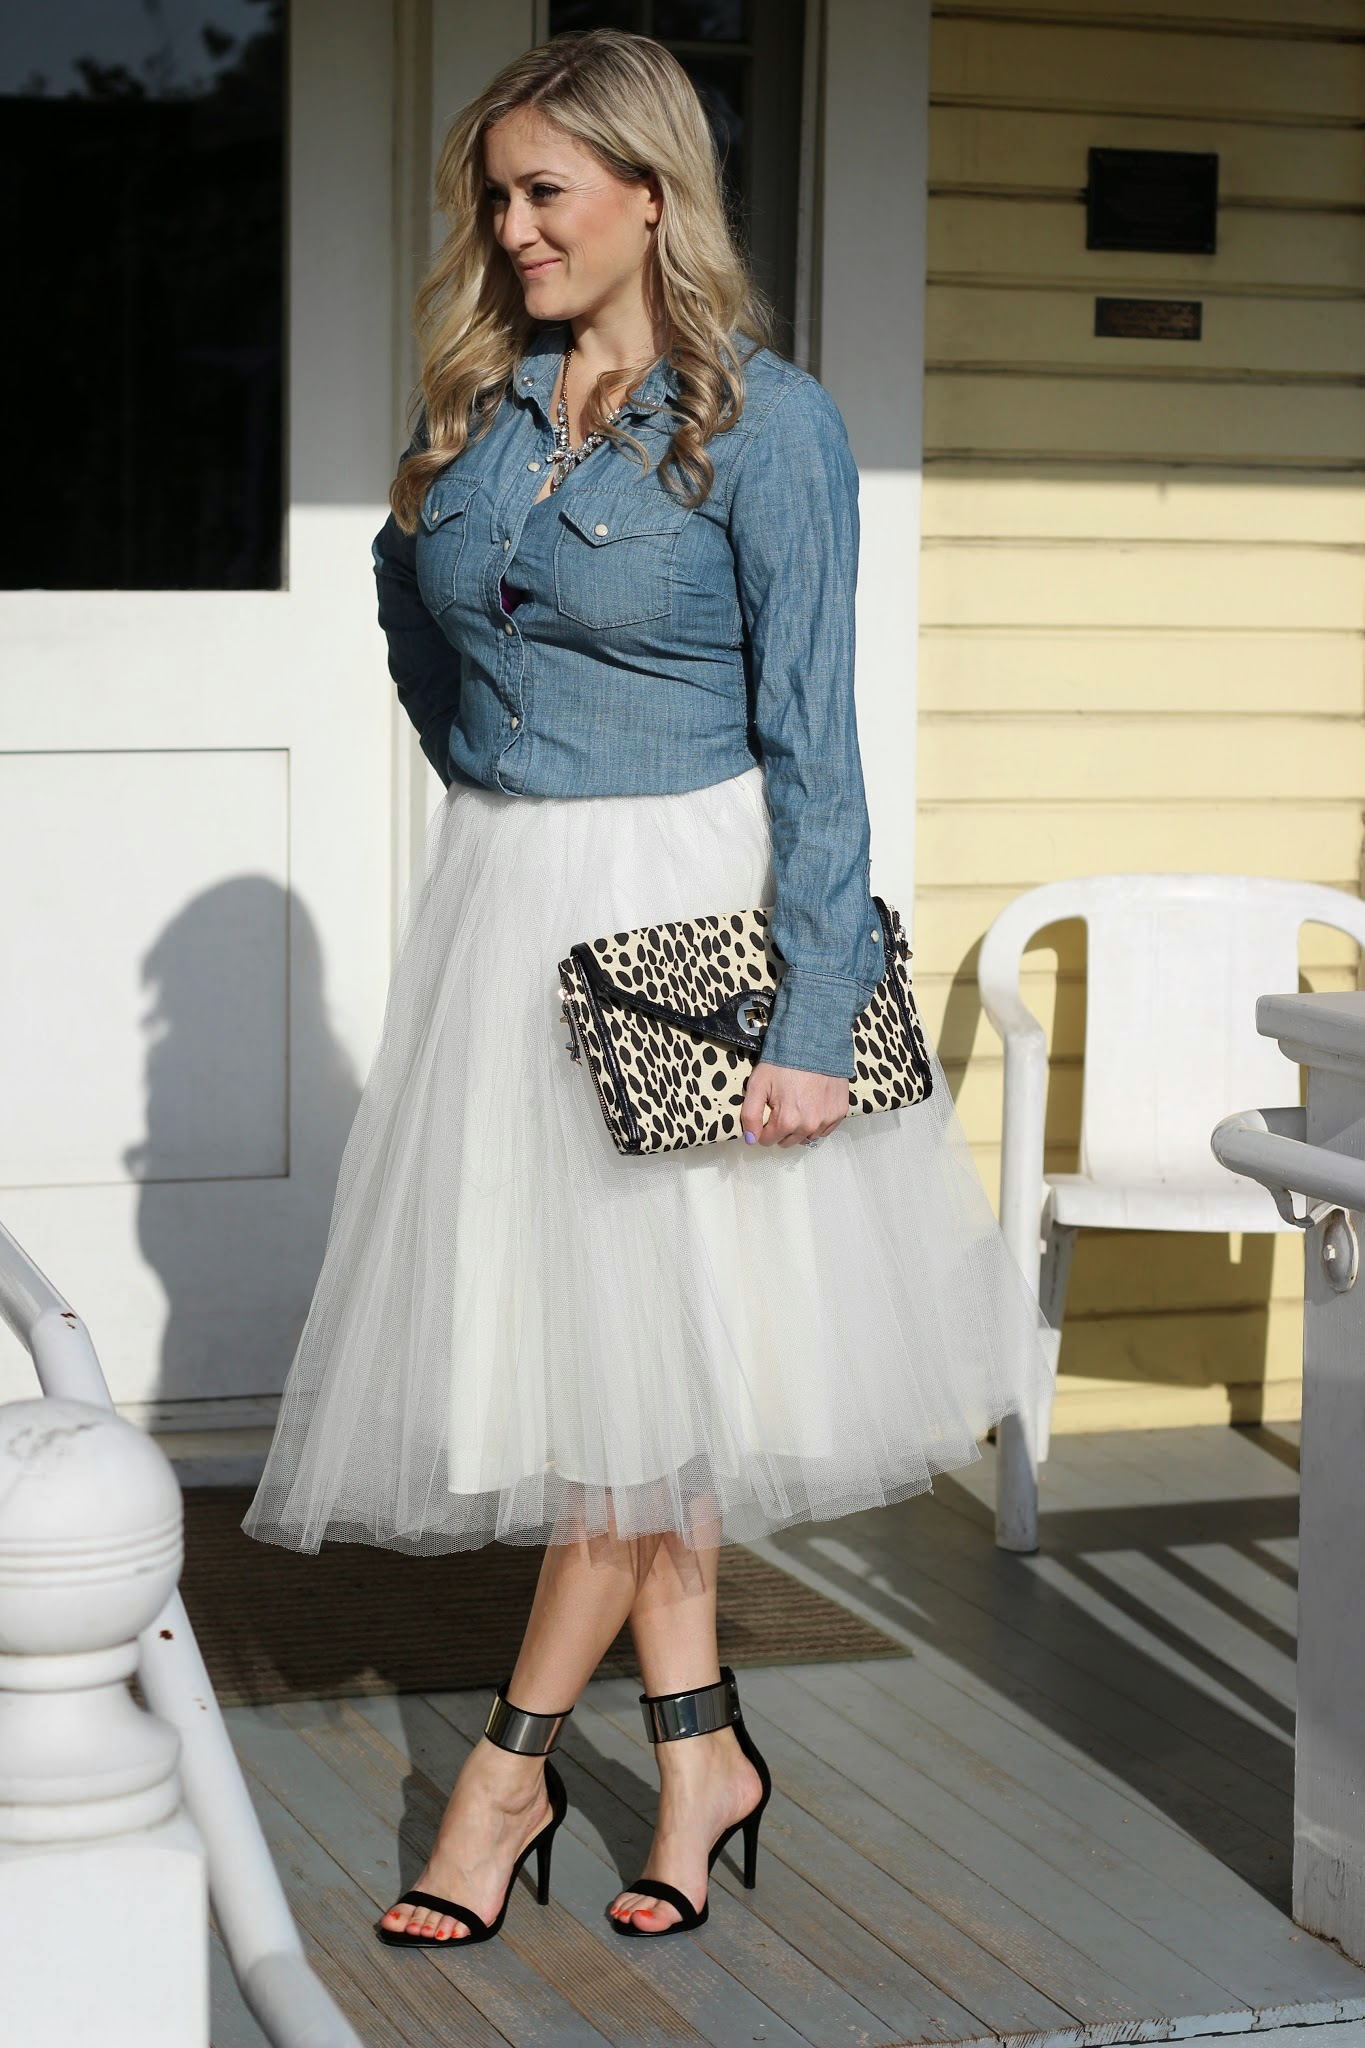 The Girl that loves, Tulle skirt, zara heel, shinymix, sole society, hot iron holster